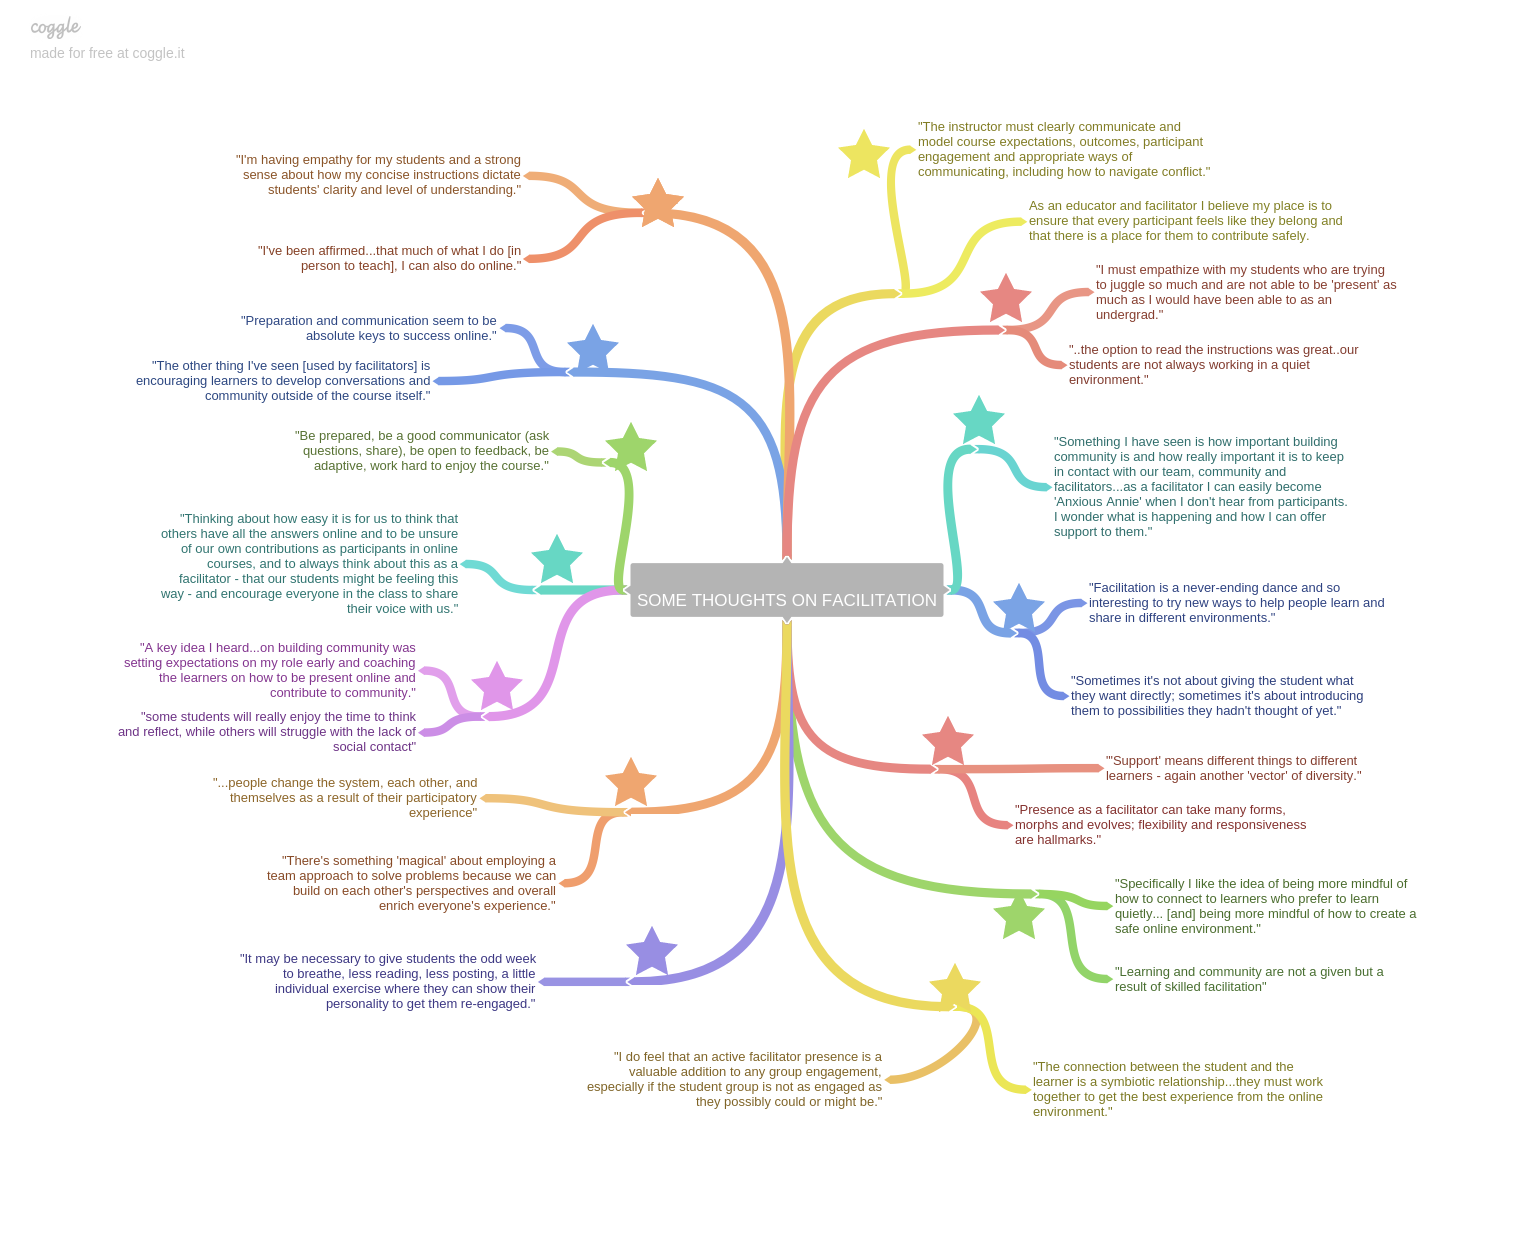 A collection of quotes from the course organized in a web-like structure